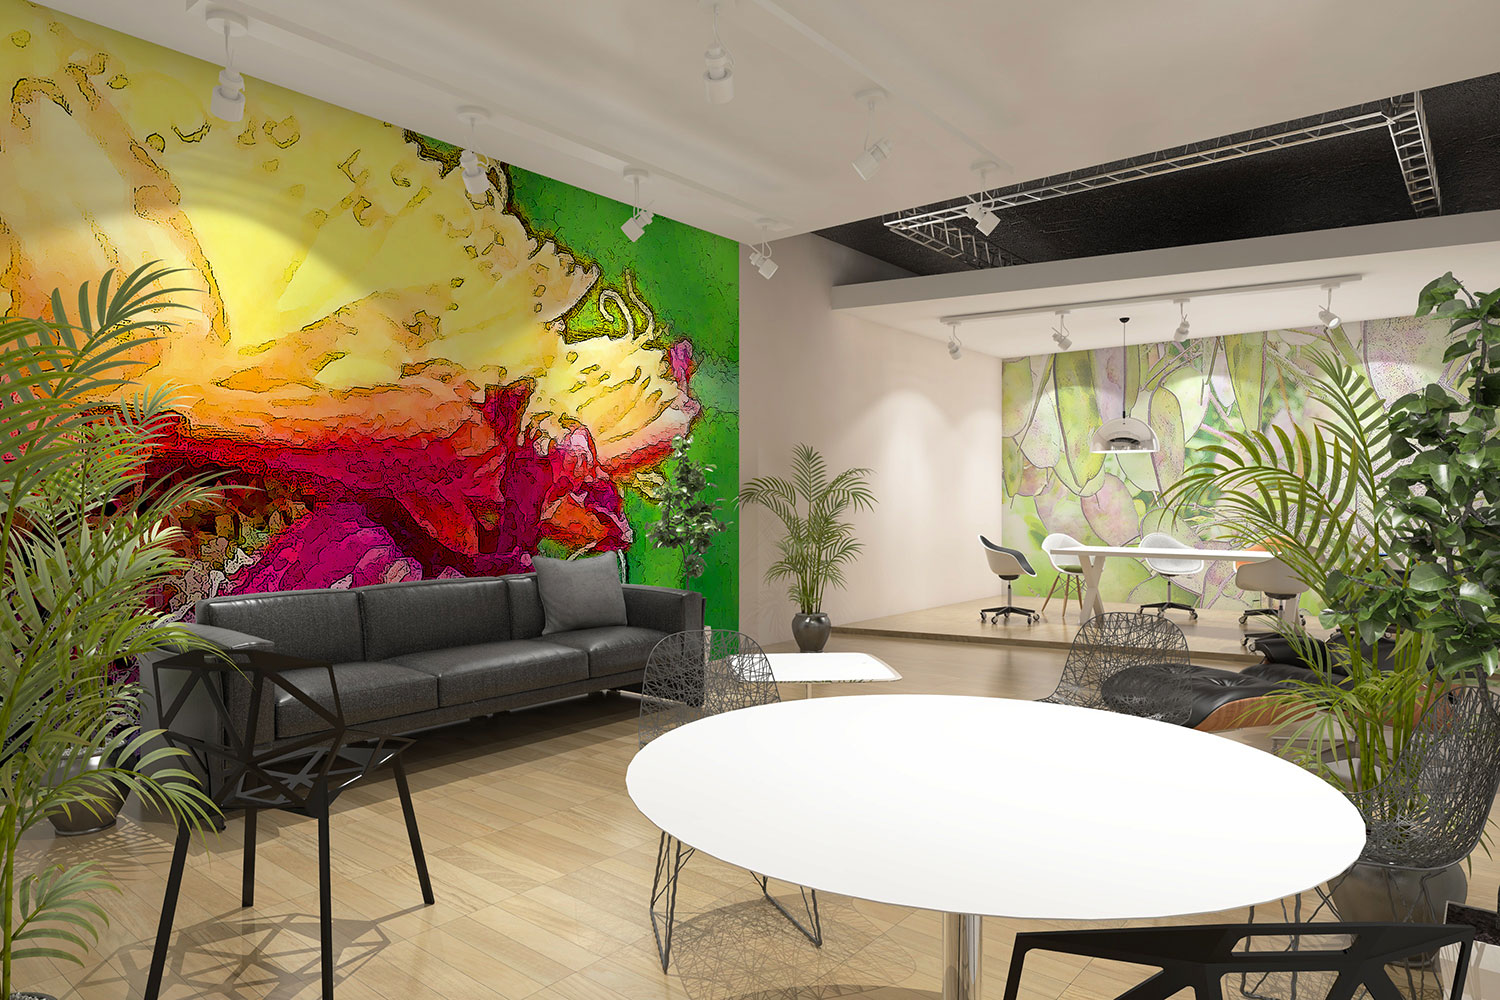 Open plan office space with mindfulness wall art mural for workplace wellbeing.jpg